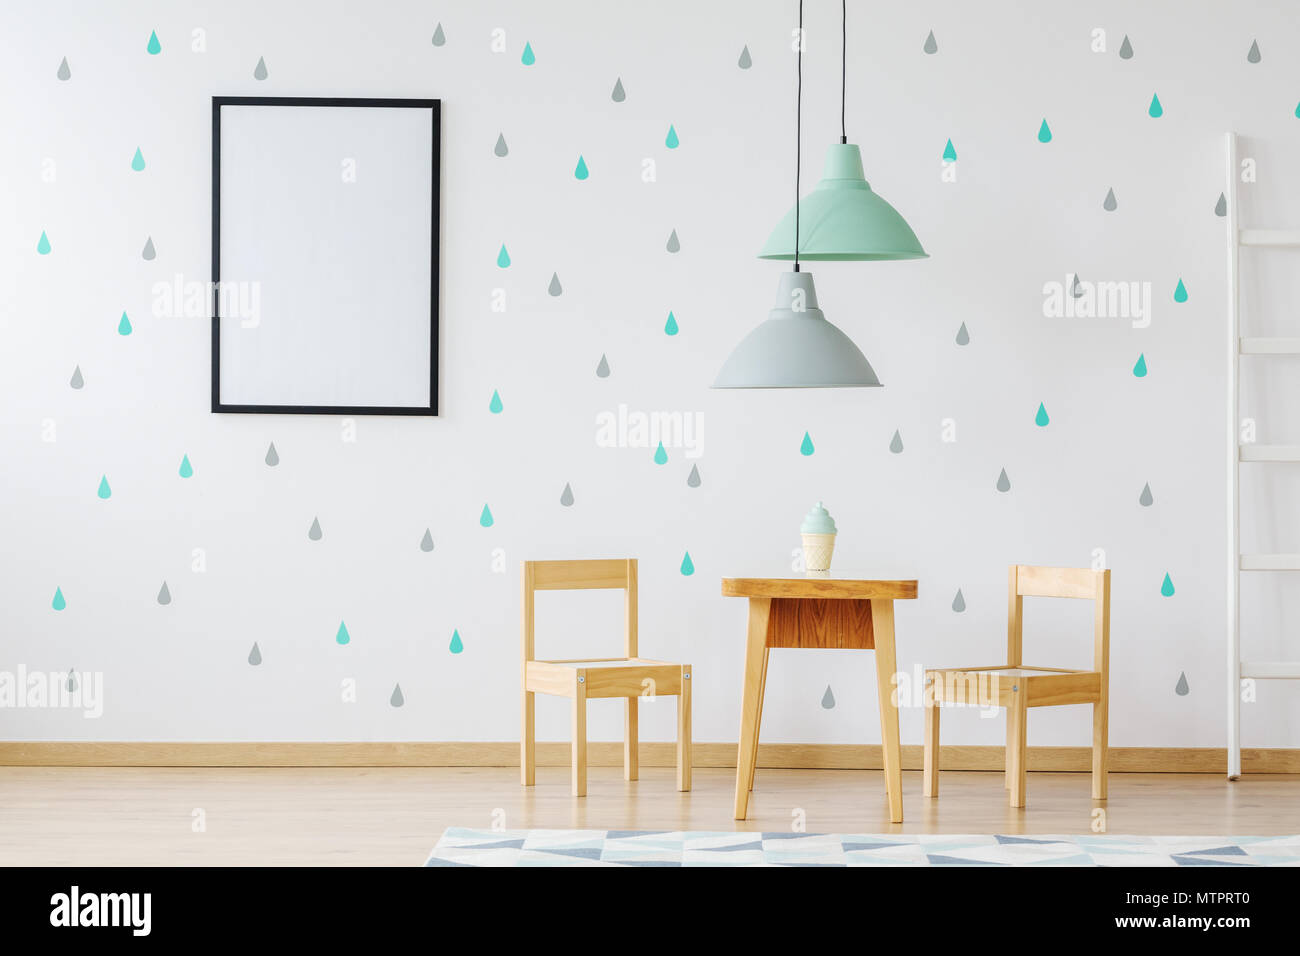 Mockup of poster on wallpaper in child's room with wooden furniture and grey and mint lamps Stock Photo